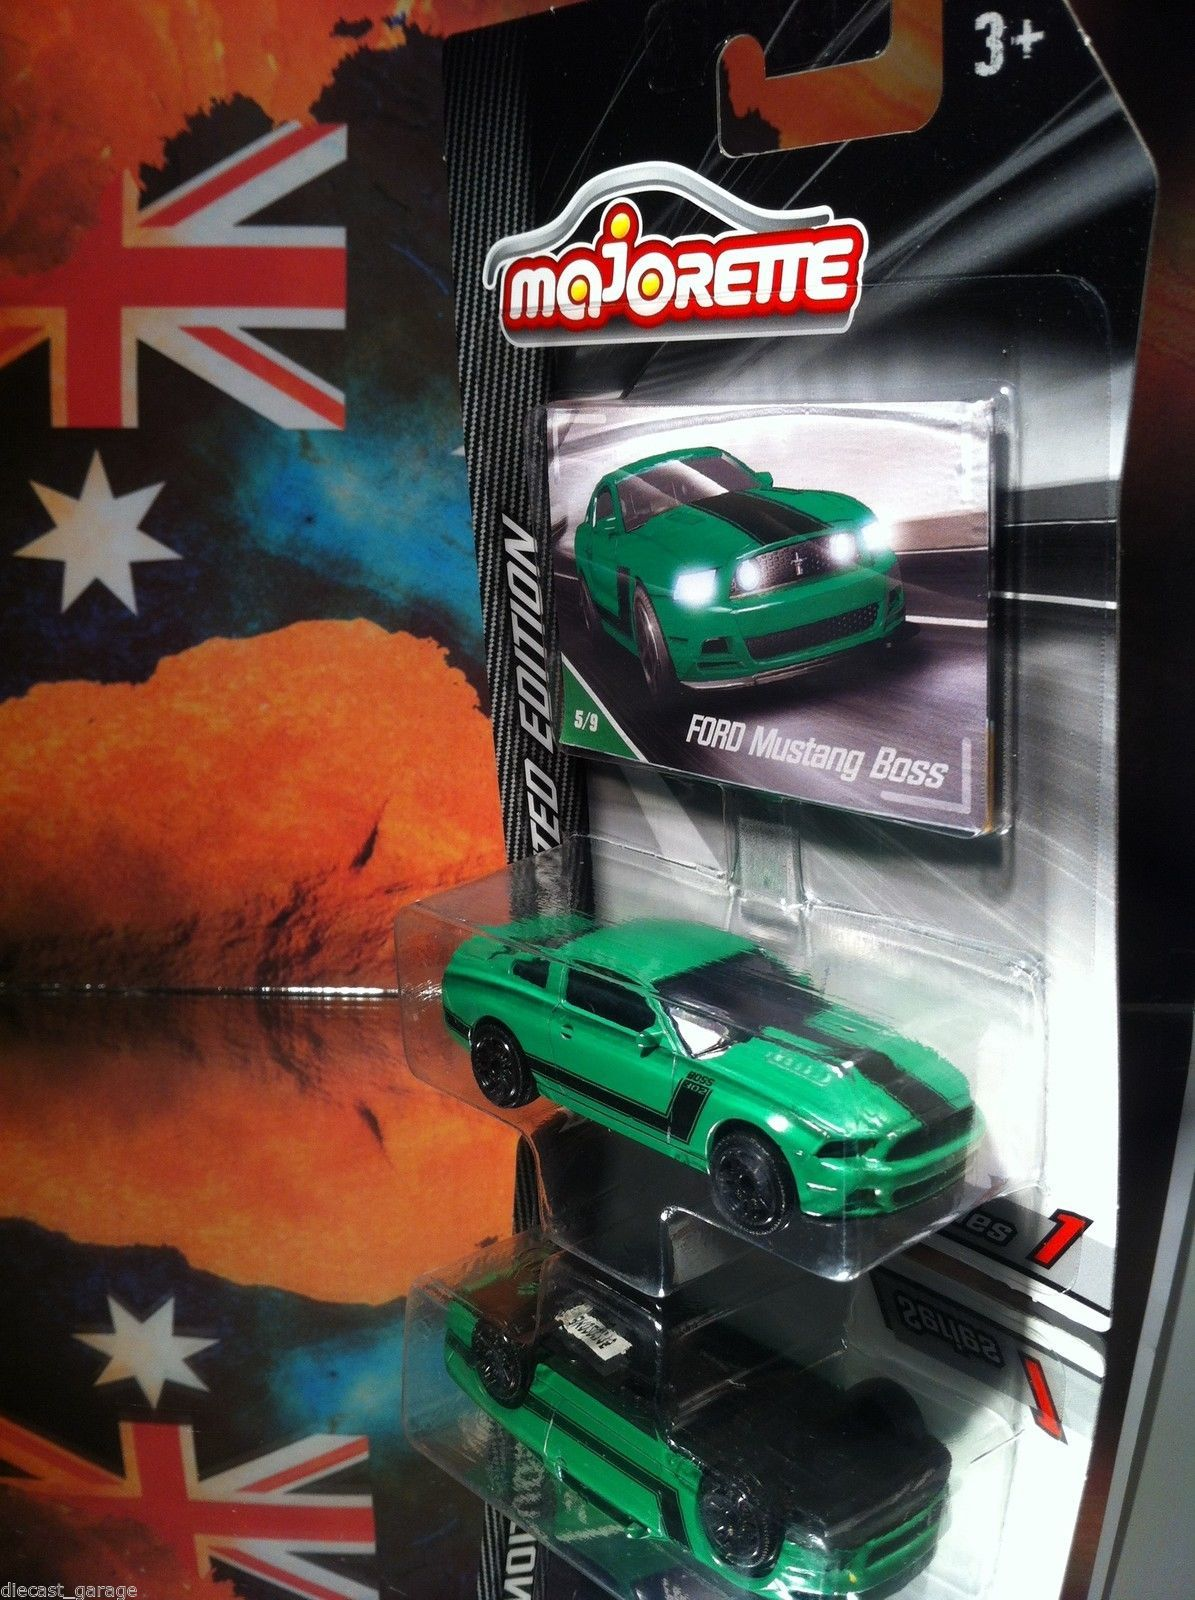 Ford mustang boss majorette muscle car drift race green drag v8 ebay www